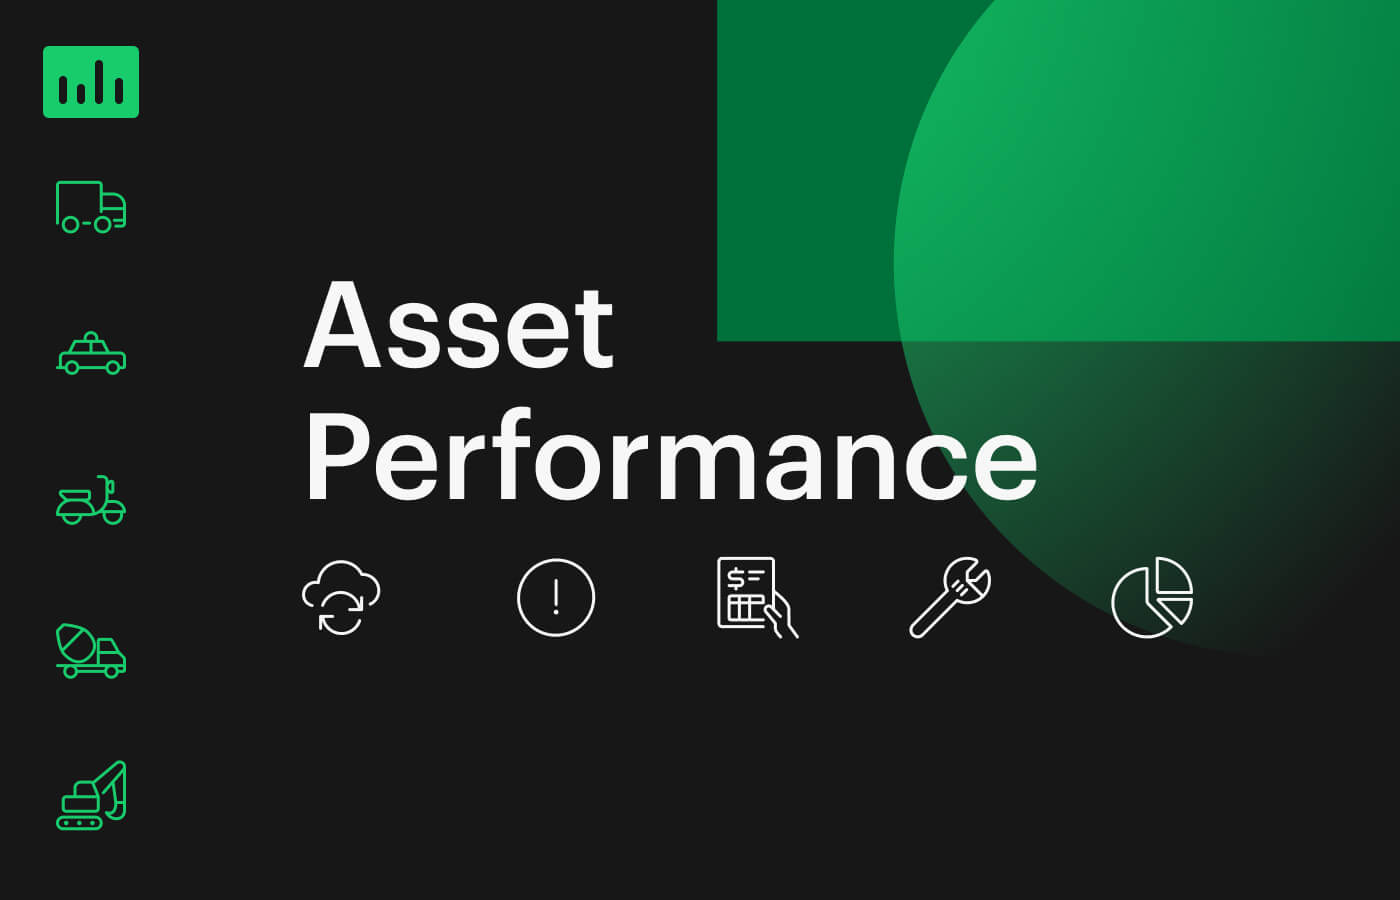 Asset performance